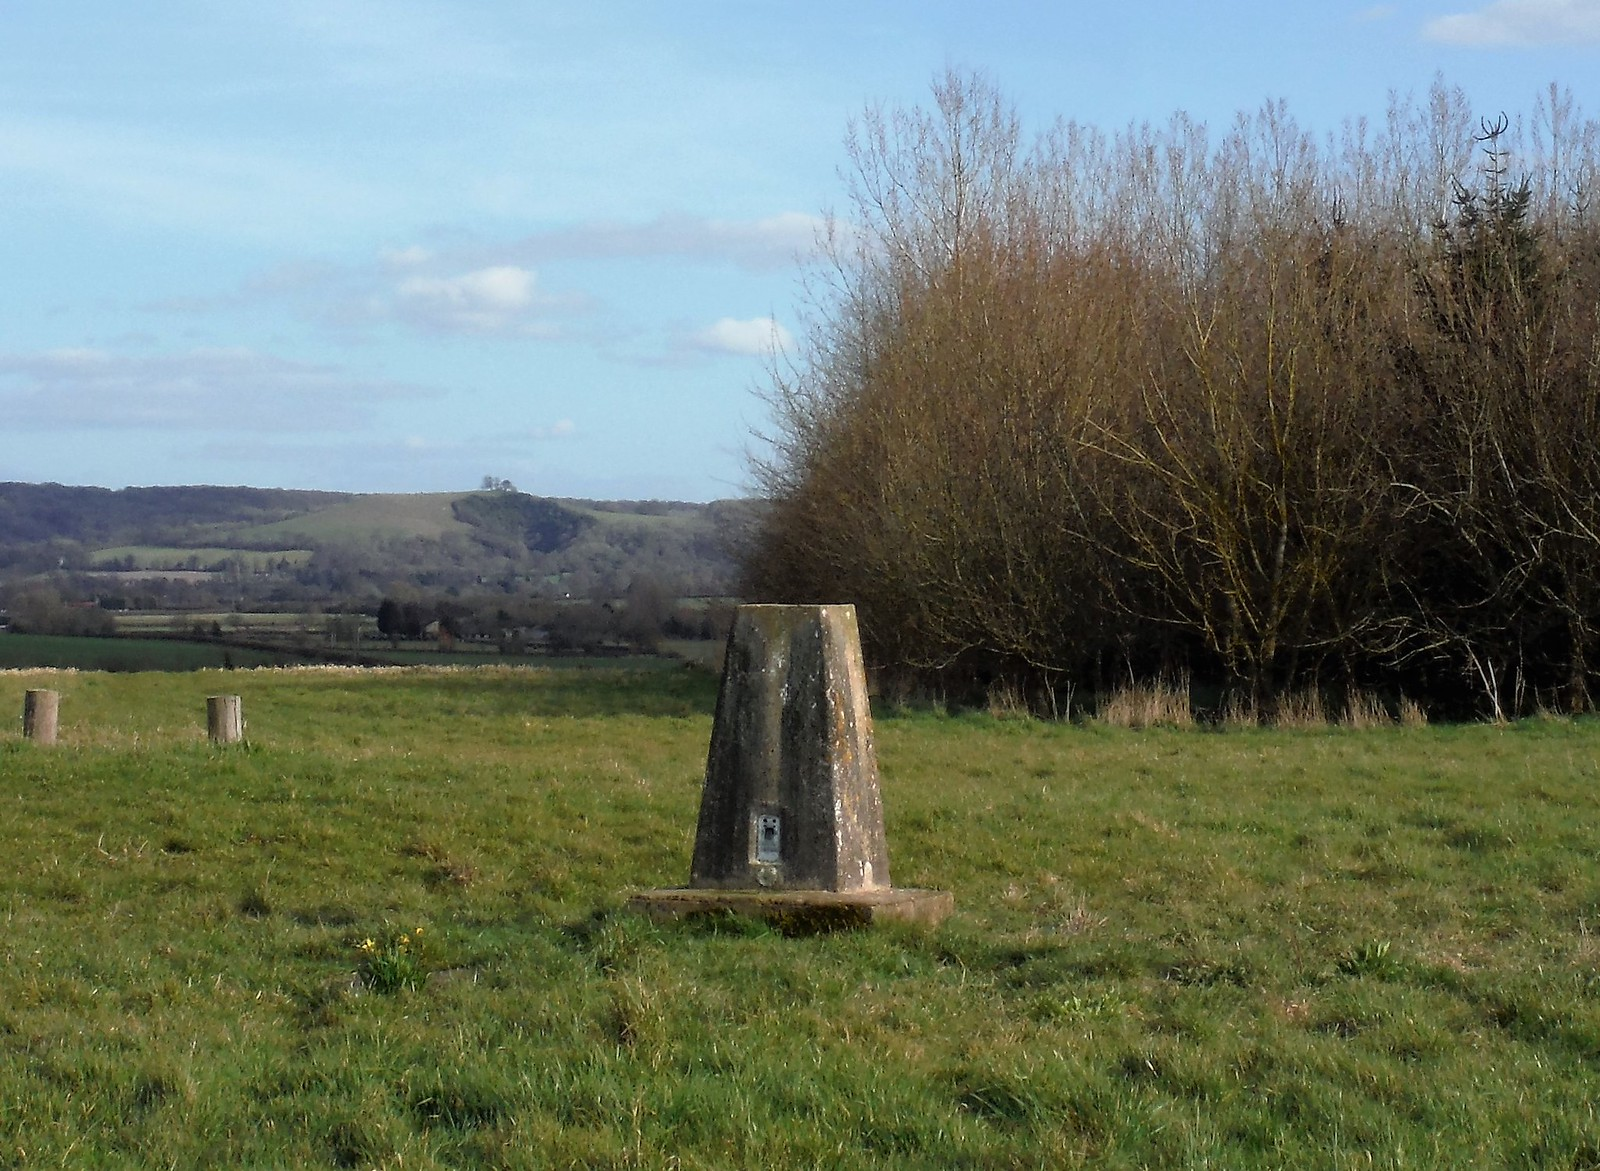 Trigpoint in Michael R. Roads Community Woodland SWC Walk 193 Haddenham to Aylesbury (via Gibraltar and Ford)